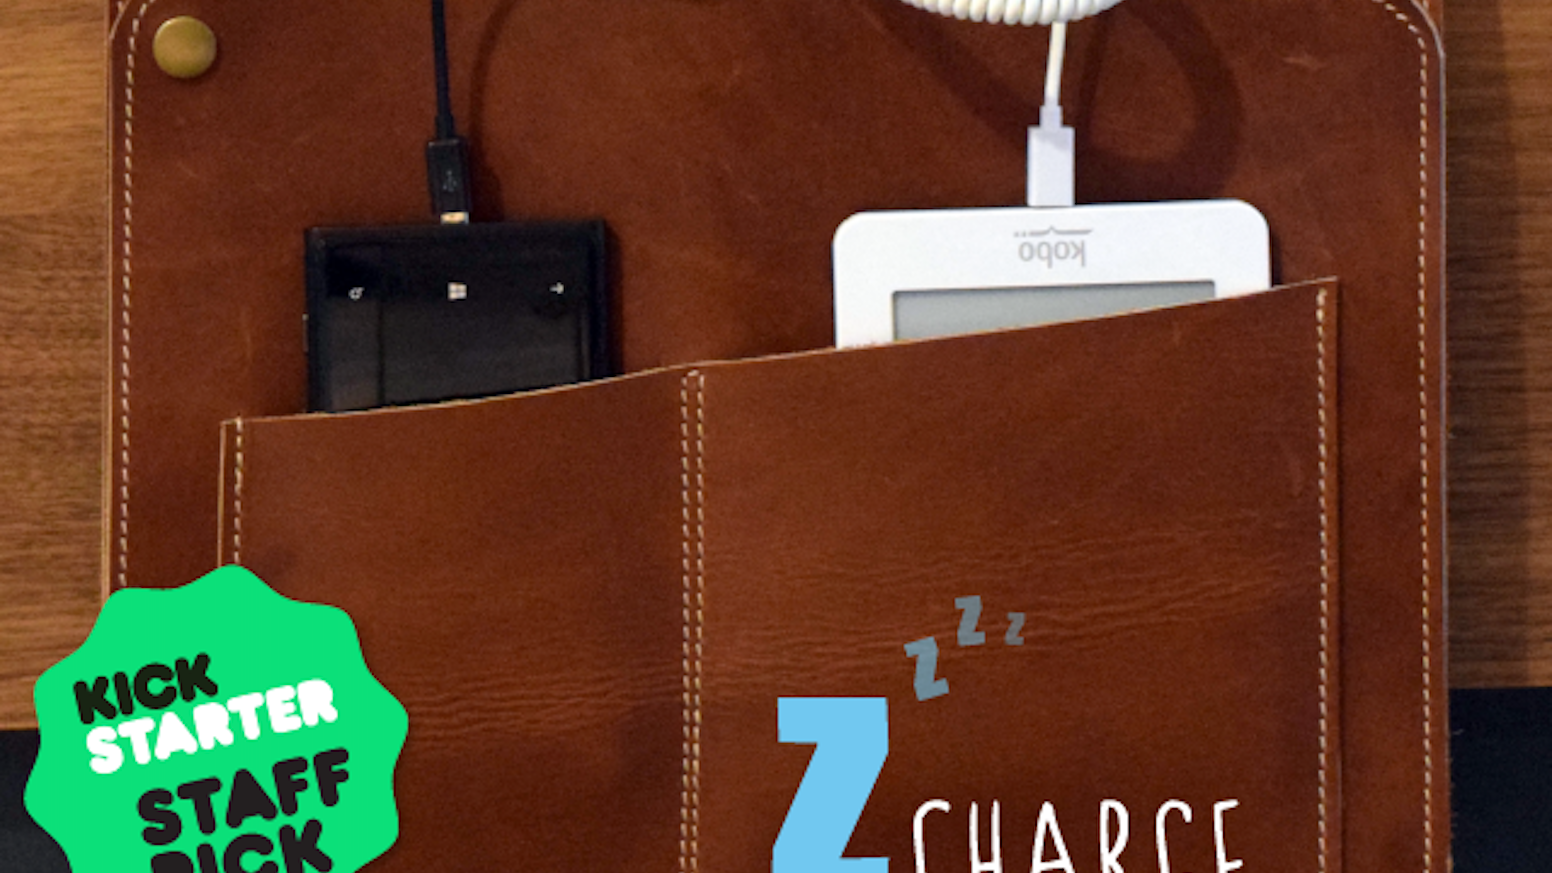 Need more power? Z-Charge is a neat bedside solution that can charge and store up to six devices.